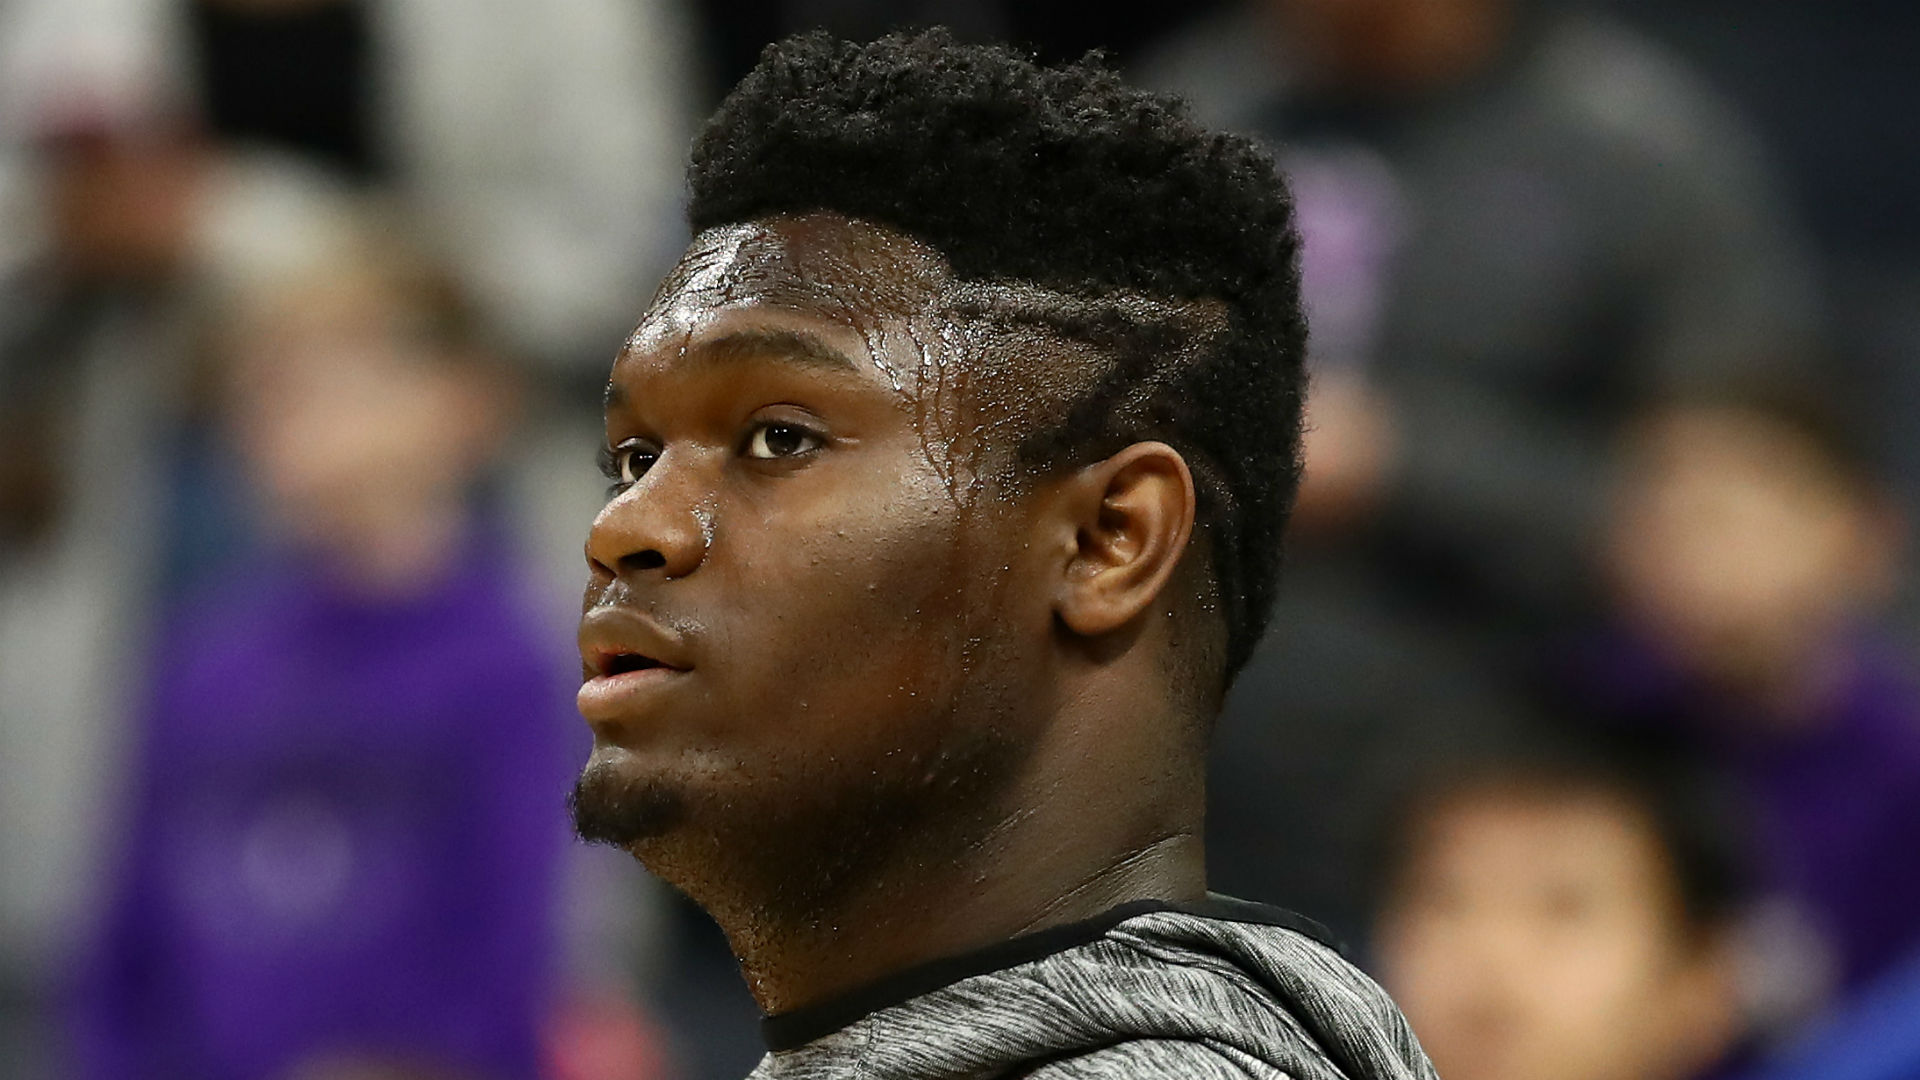 Five things to look out for in Zion Williamson's NBA debut